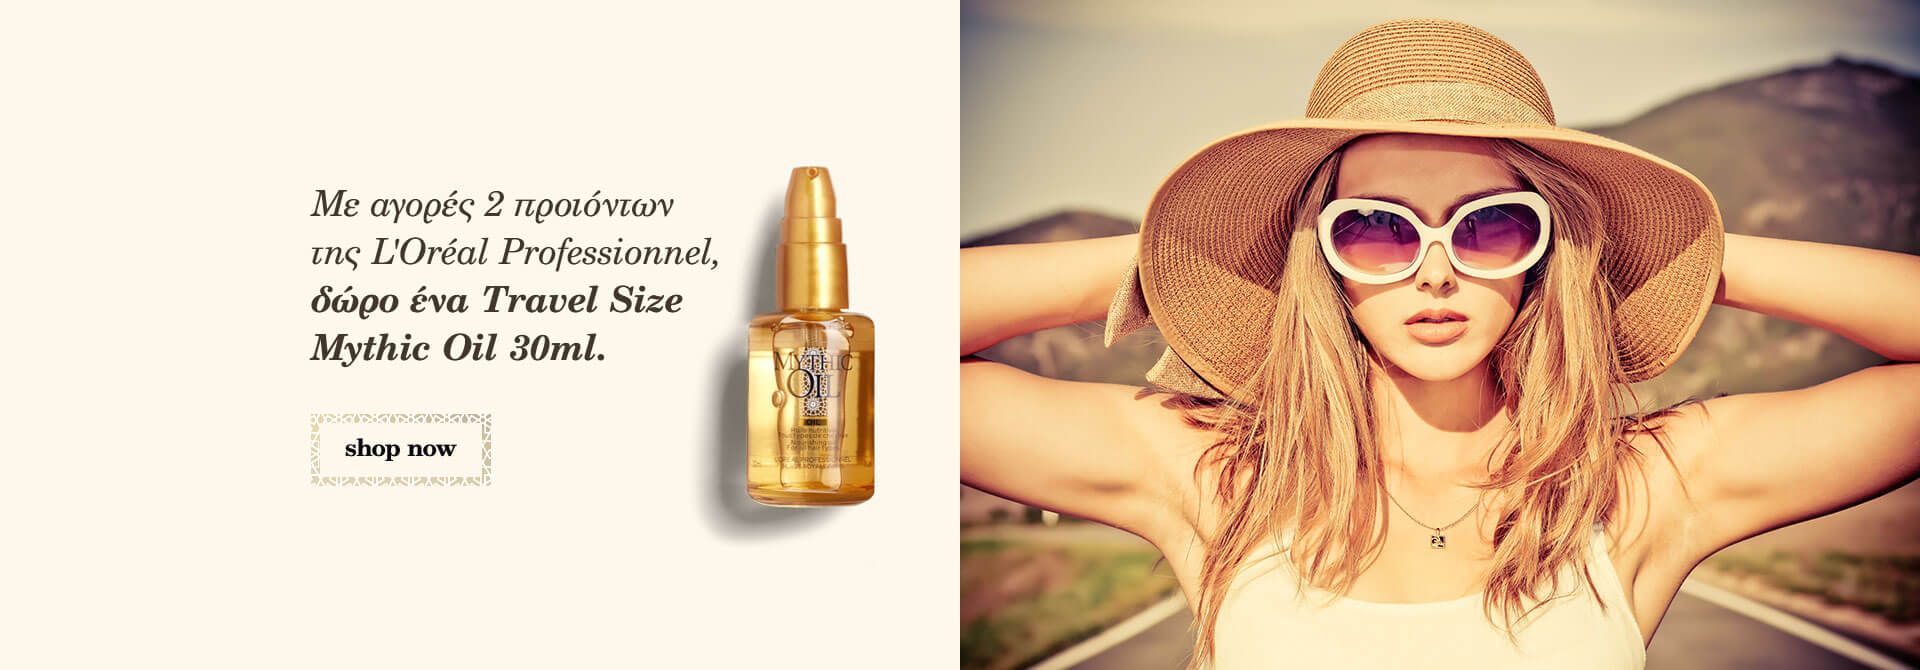 Mythic Oil travel size